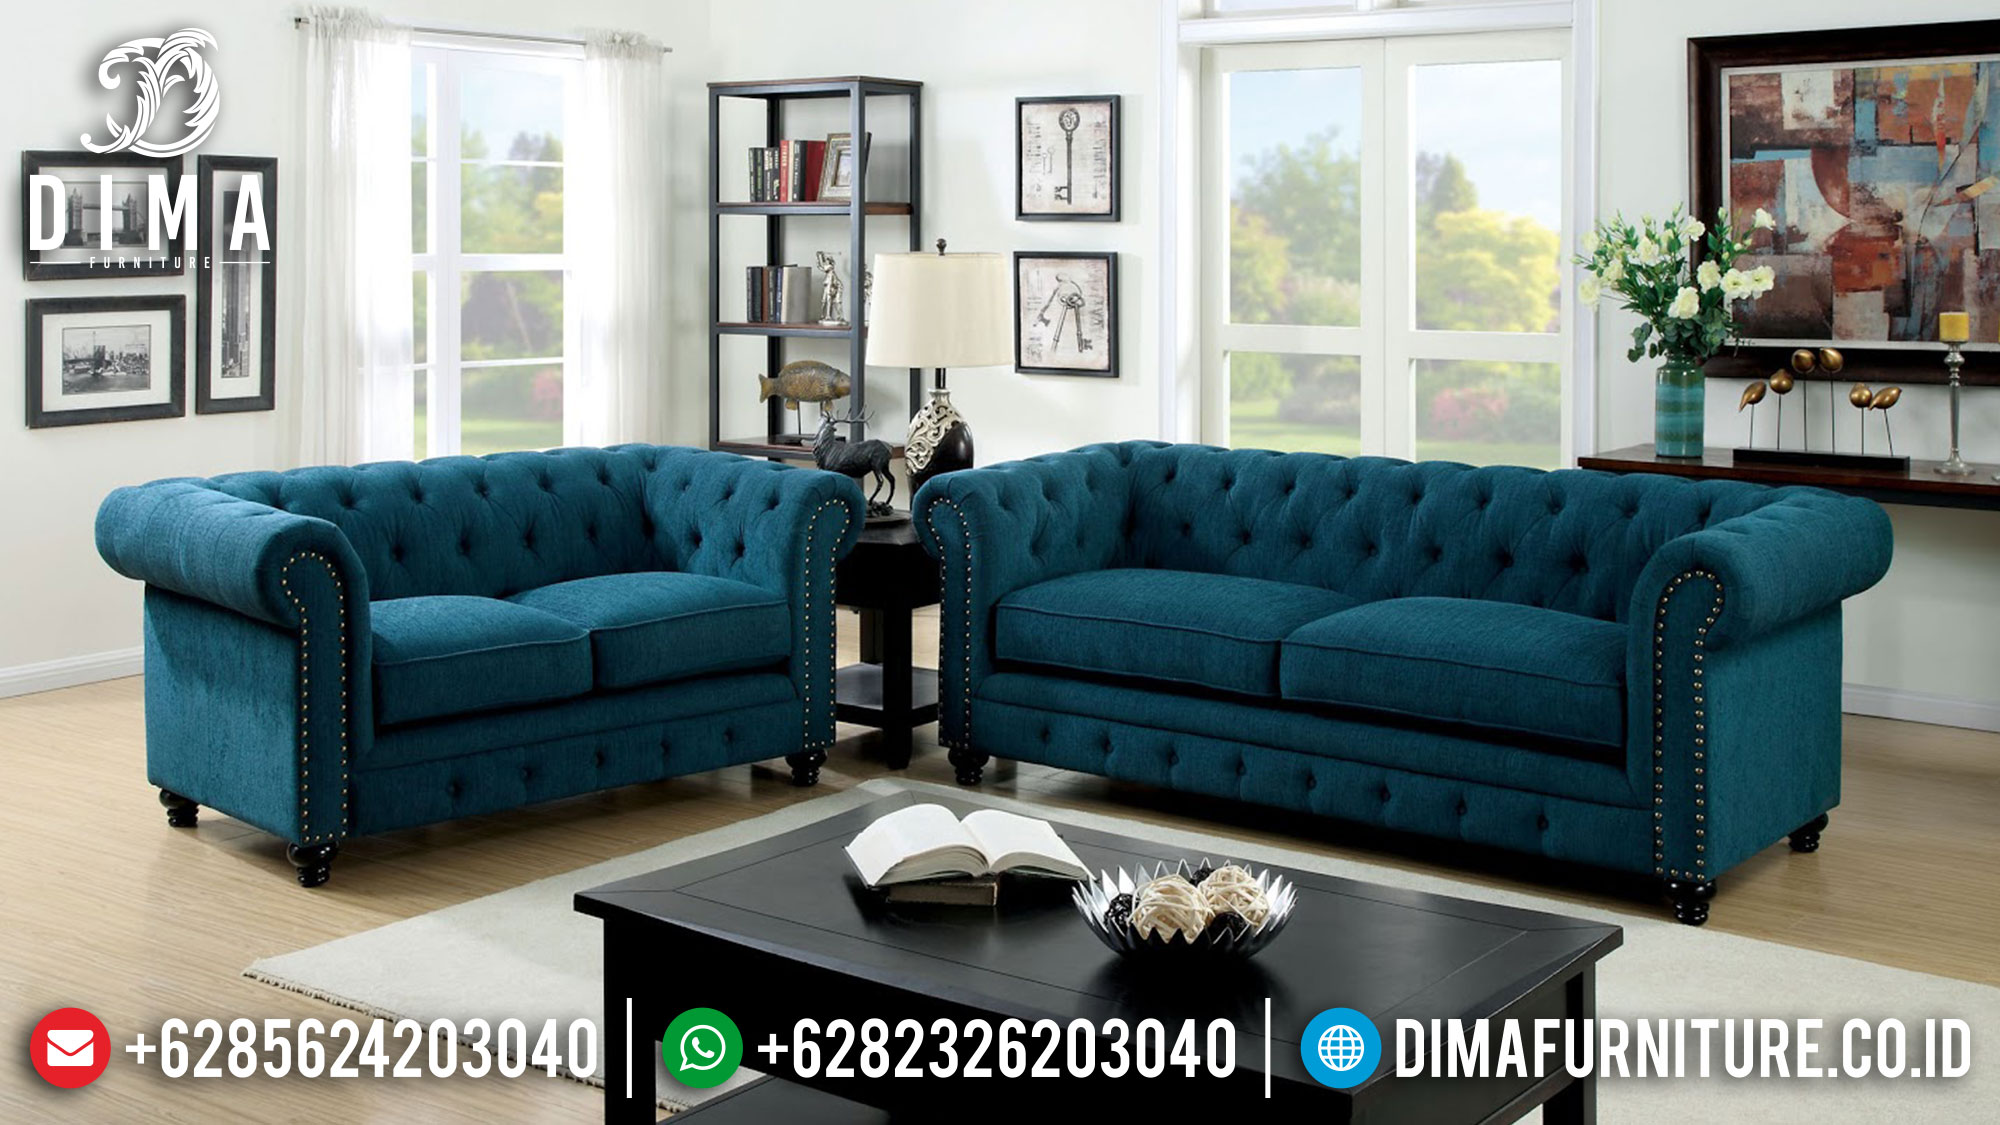 Sofa Chesterfield Set Sofa Tamu Minimalis Terbaru New Furniture Jepara Released Ttj-1475